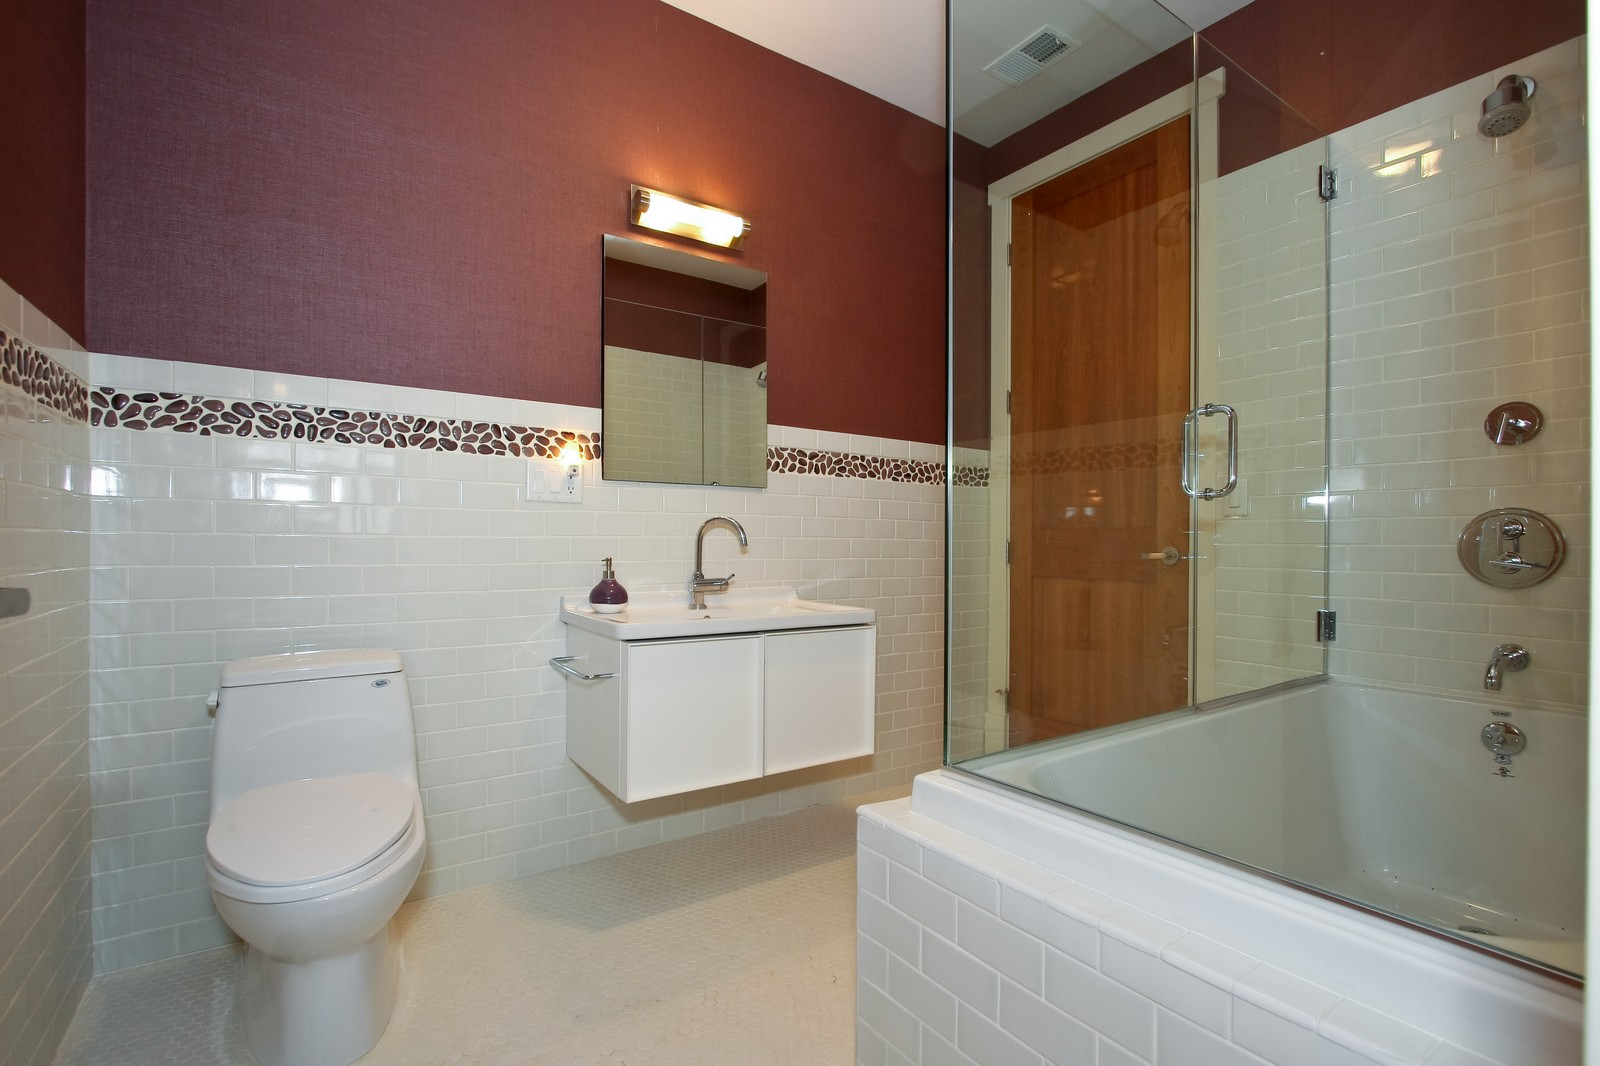 Real Estate Photography - 444 W. 38th Street, Chicago, IL, 60609 - 2nd Floor Hall Bath